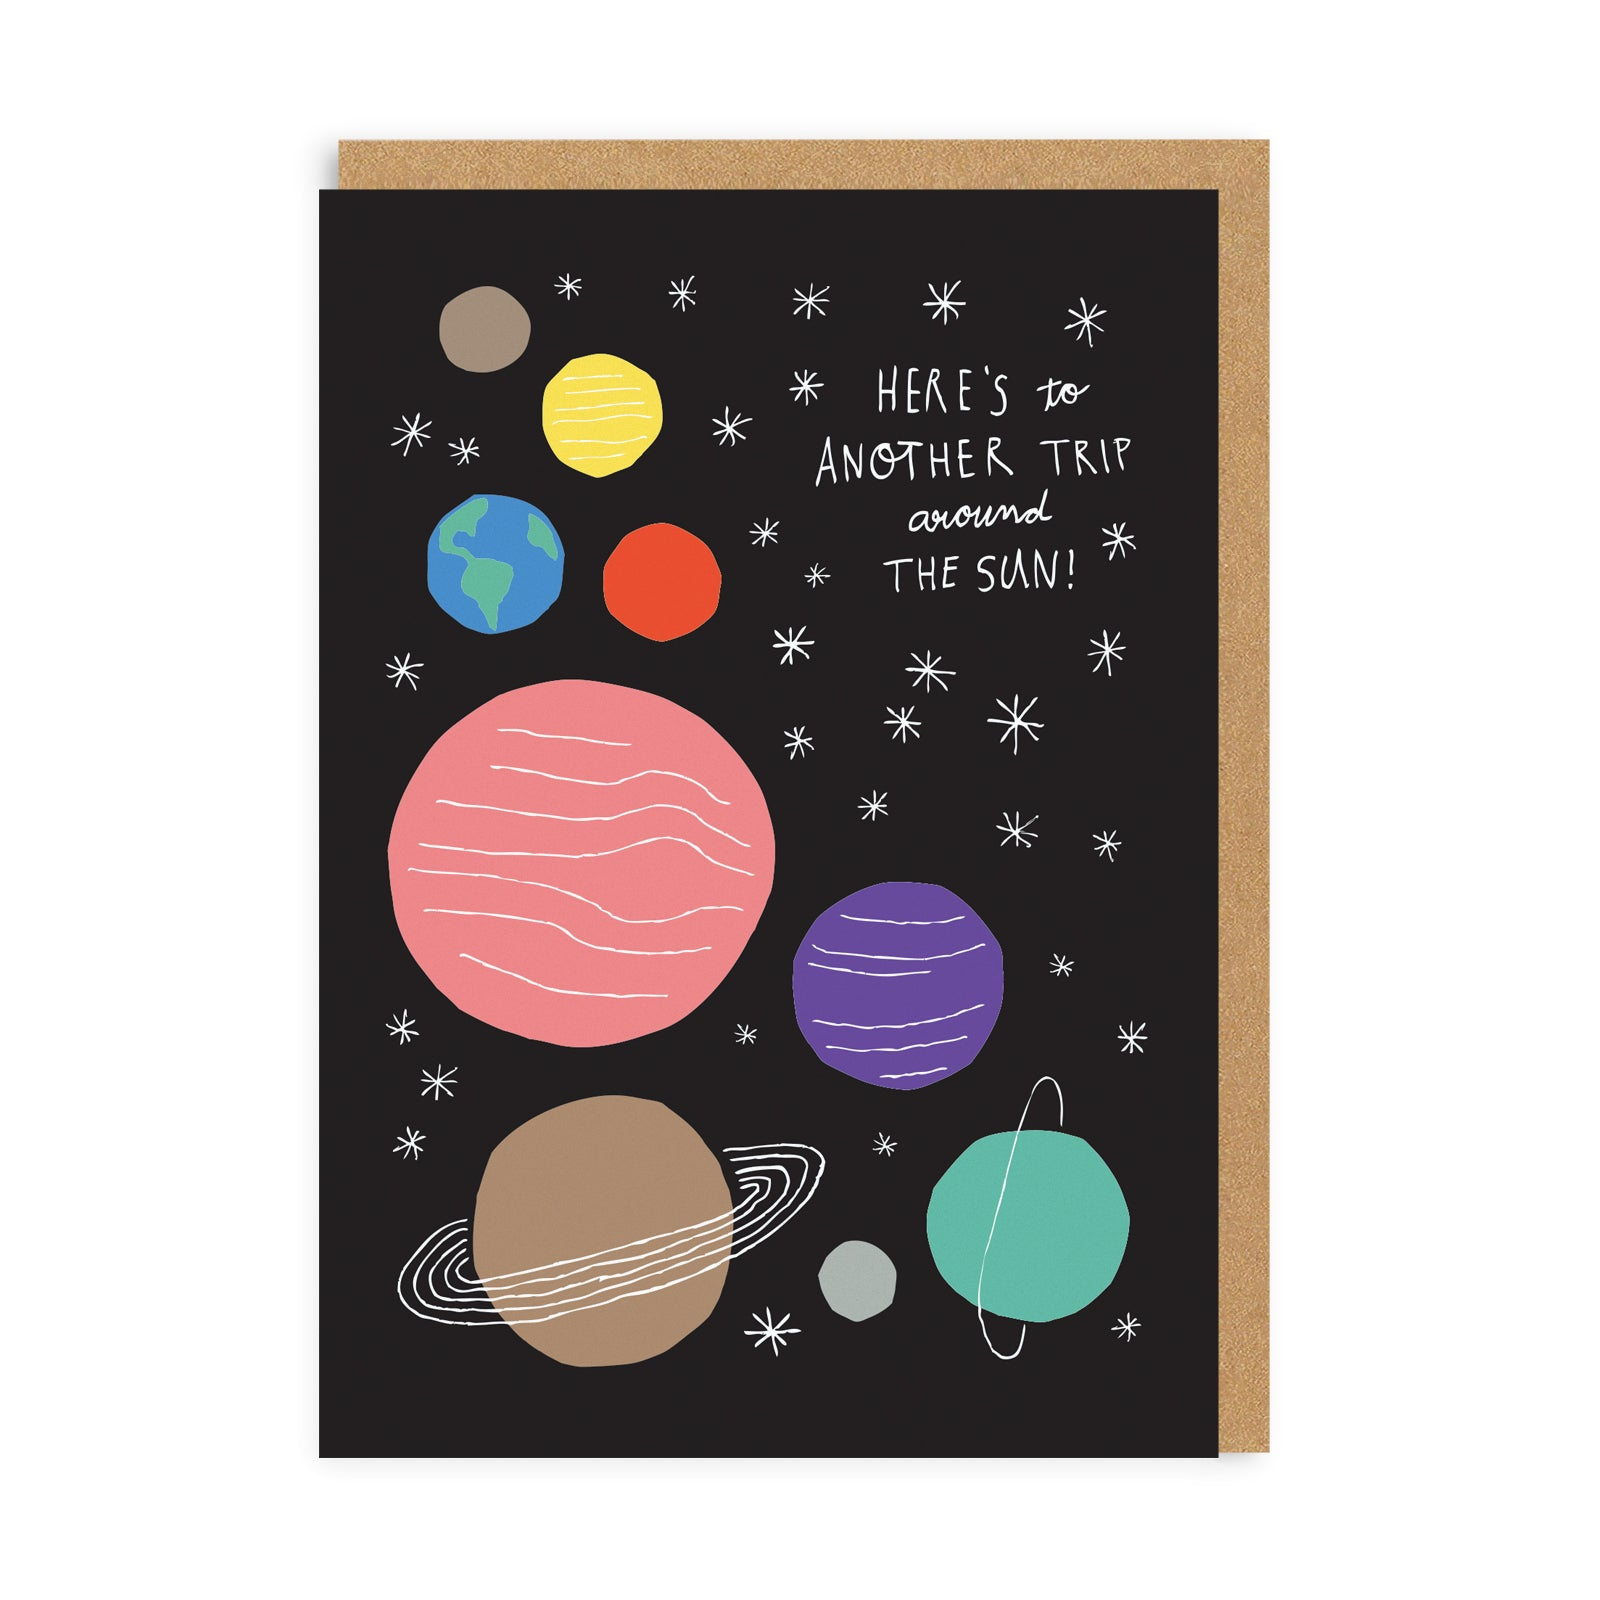 Birthday card with black background and illustrated planets, with white stars and white text quote